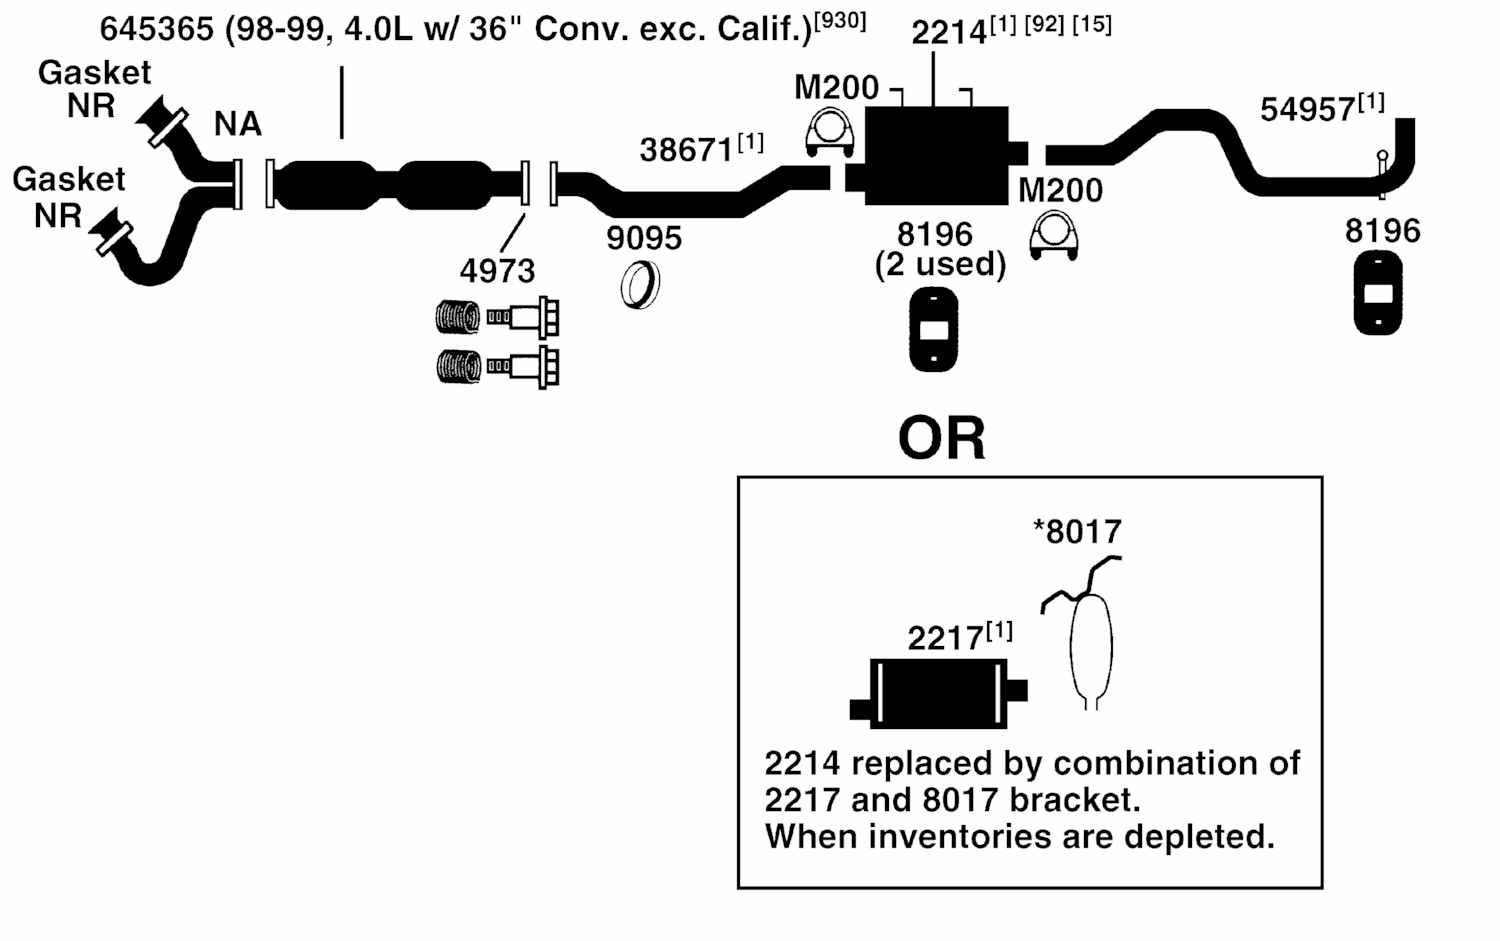 2003 ford explorer parts diagram emg 81 85 wiring 1 volume tone 98 ranger exhaust free engine image for